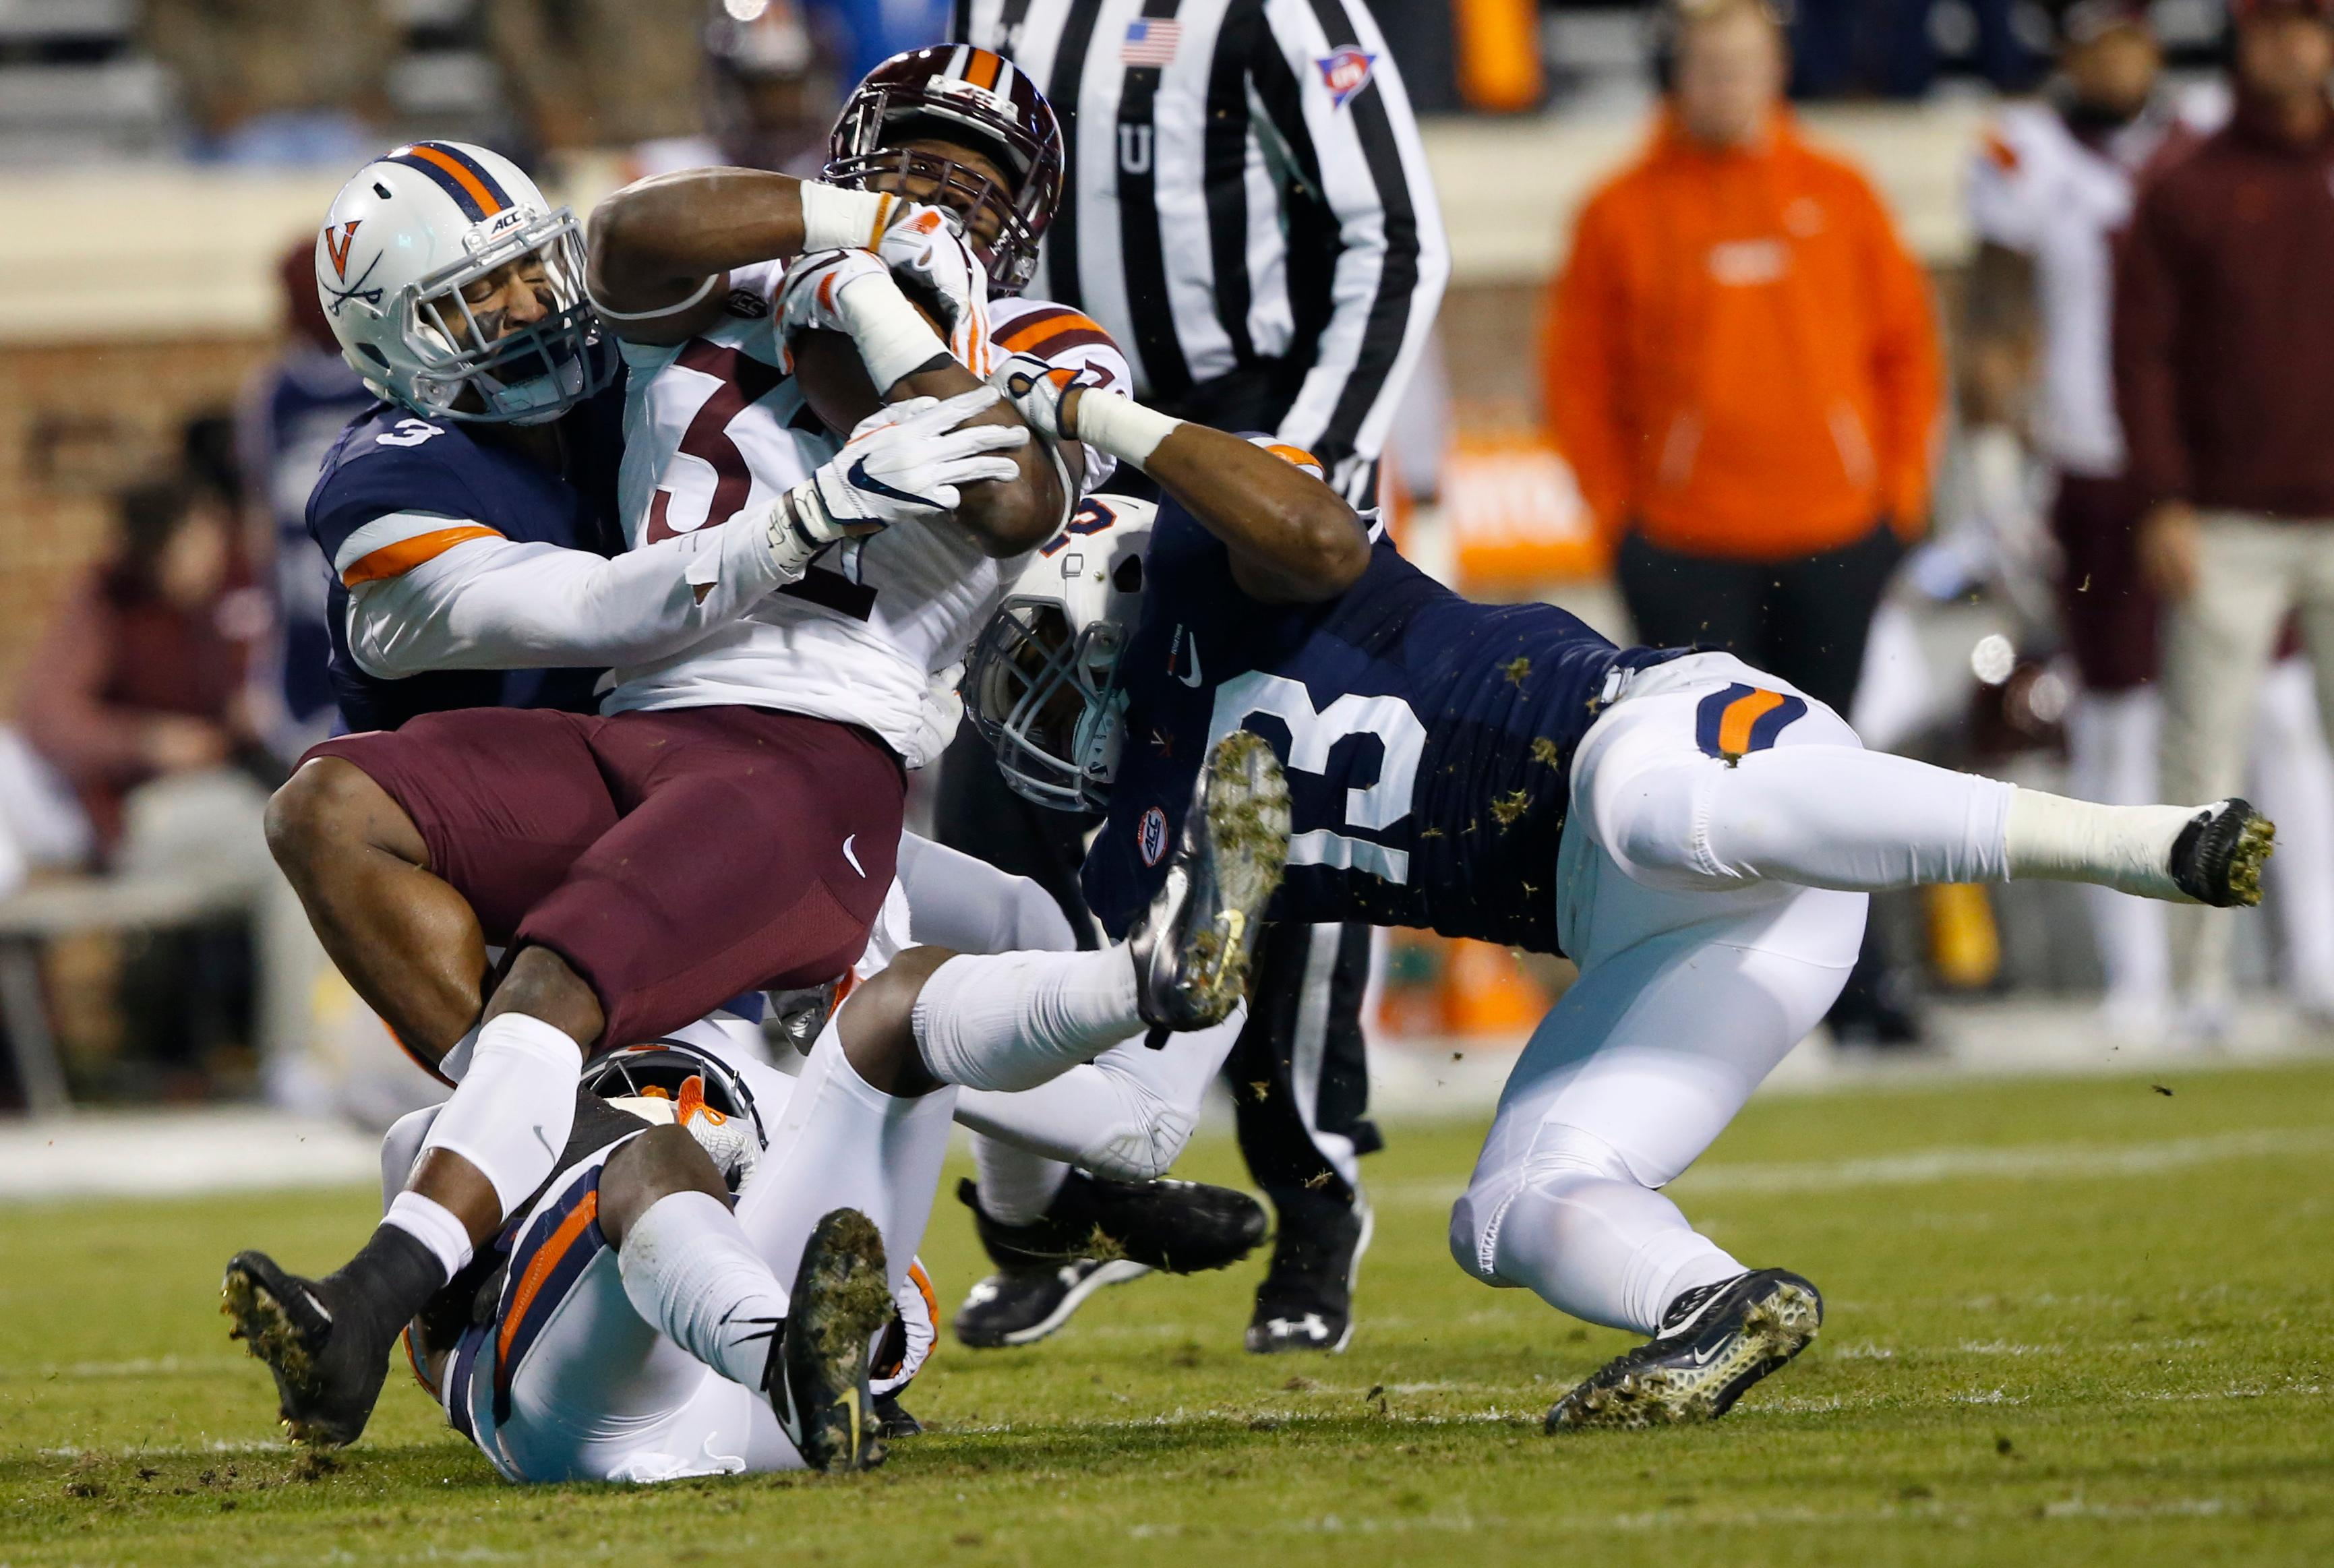 Virginia Tech running back Steven Peoples (32) gets wrapped up by Virginia linebacker Chris Peace (13) and safety Quin Blanding (3) during the first half of an NCAA college football game in Charlottesville, Va., Friday, Nov. 24, 2017. (AP Photo/Steve Helber)